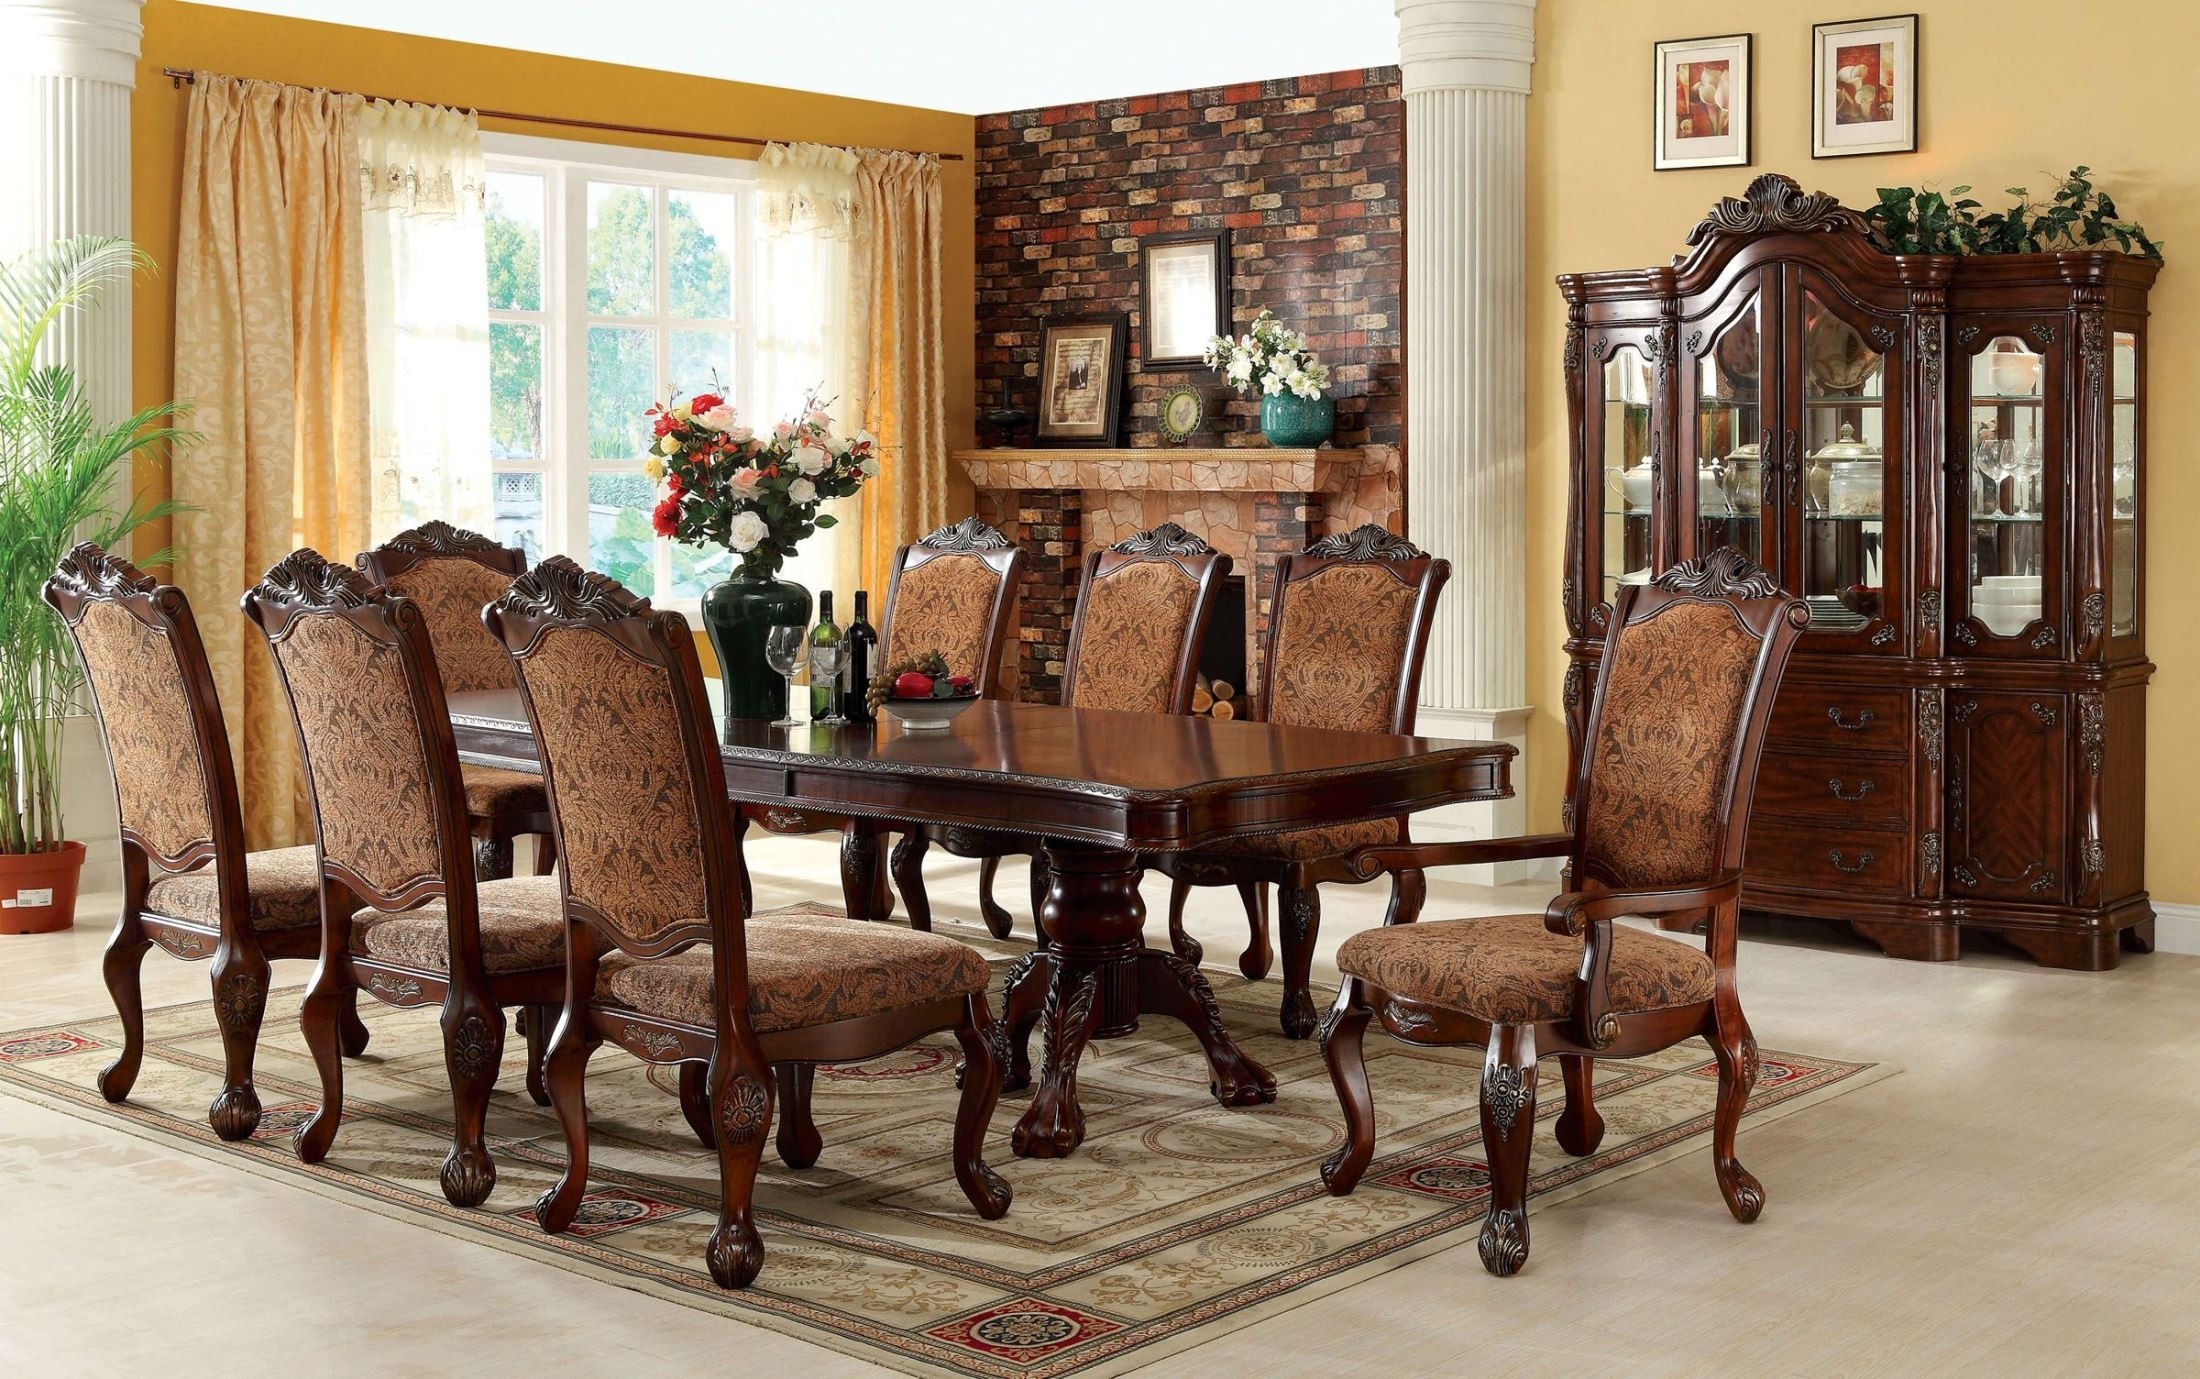 Cromwell antique cherry formal dining room set cm3103t for Cherry wood dining room set